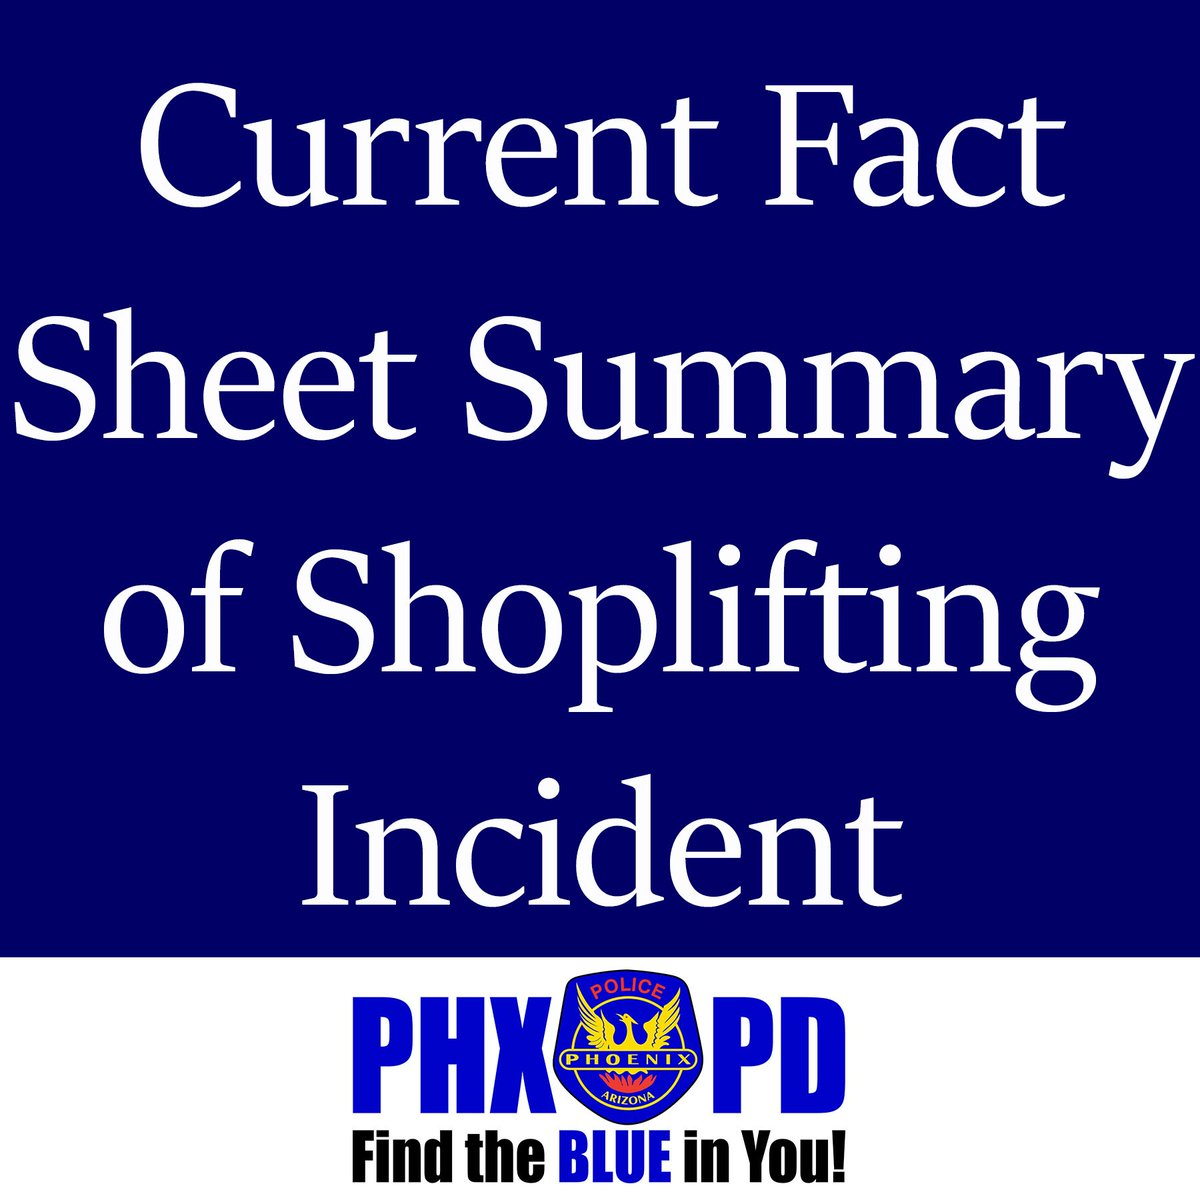 CURRENT FACT SHEET SUMMARY OF PHOENIX POLICE RESPONSE TO SHOPLIFTING INCIDENT RESULTING IN OFFICERS BEING REMOVED FROM THE STREET AND ASSIGNED TO DESK DUTY: https://www.facebook.com/phoenixazpolice/photos/a.301060533302534/2692890270786203/?type=3&theater…